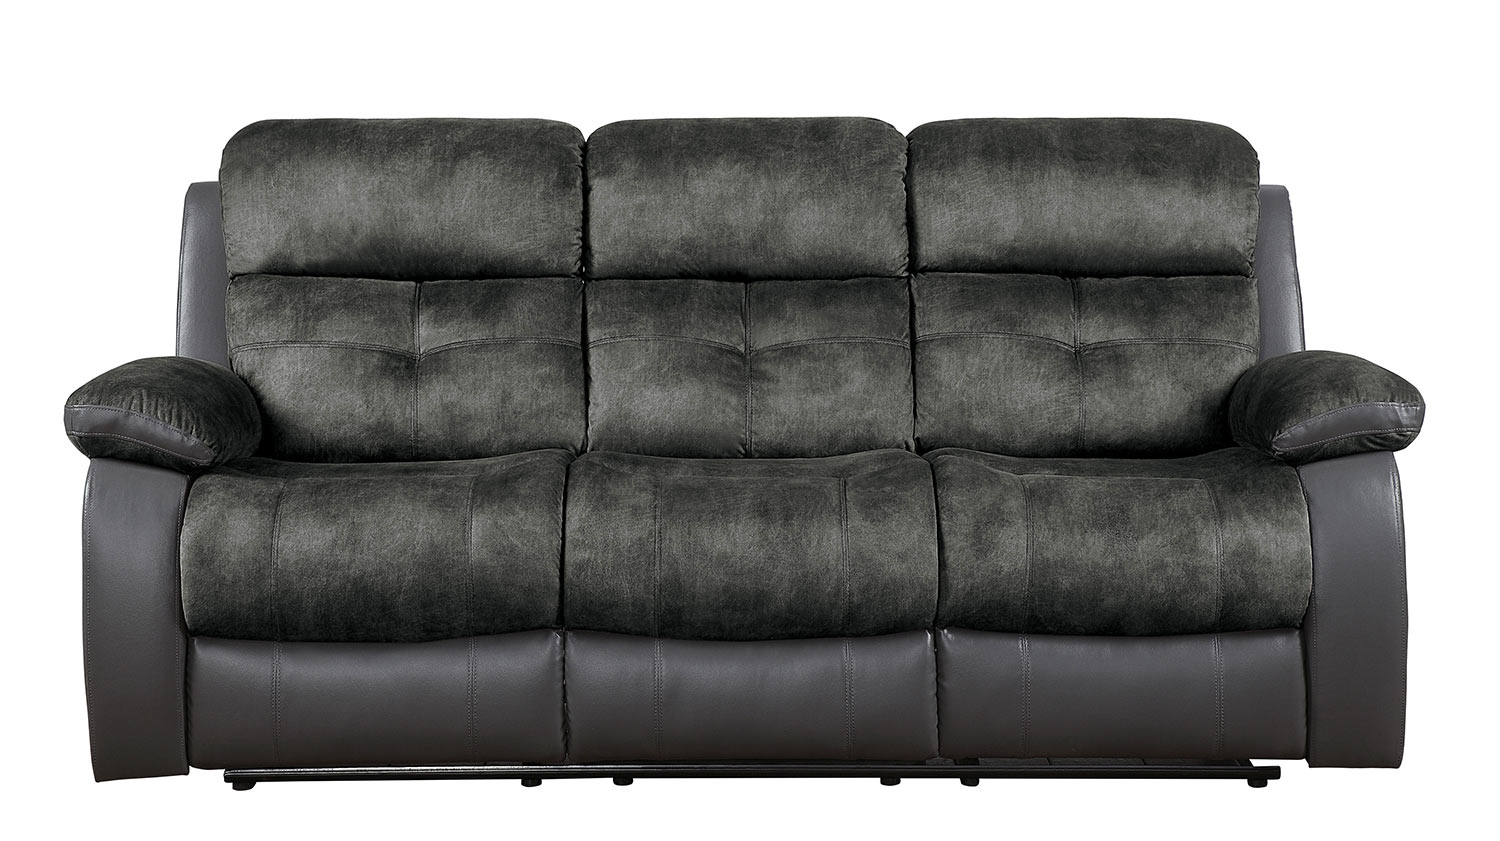 Homelegance Acadia Double Reclining Sofa - Gray microfiber and bi-cast vinyl